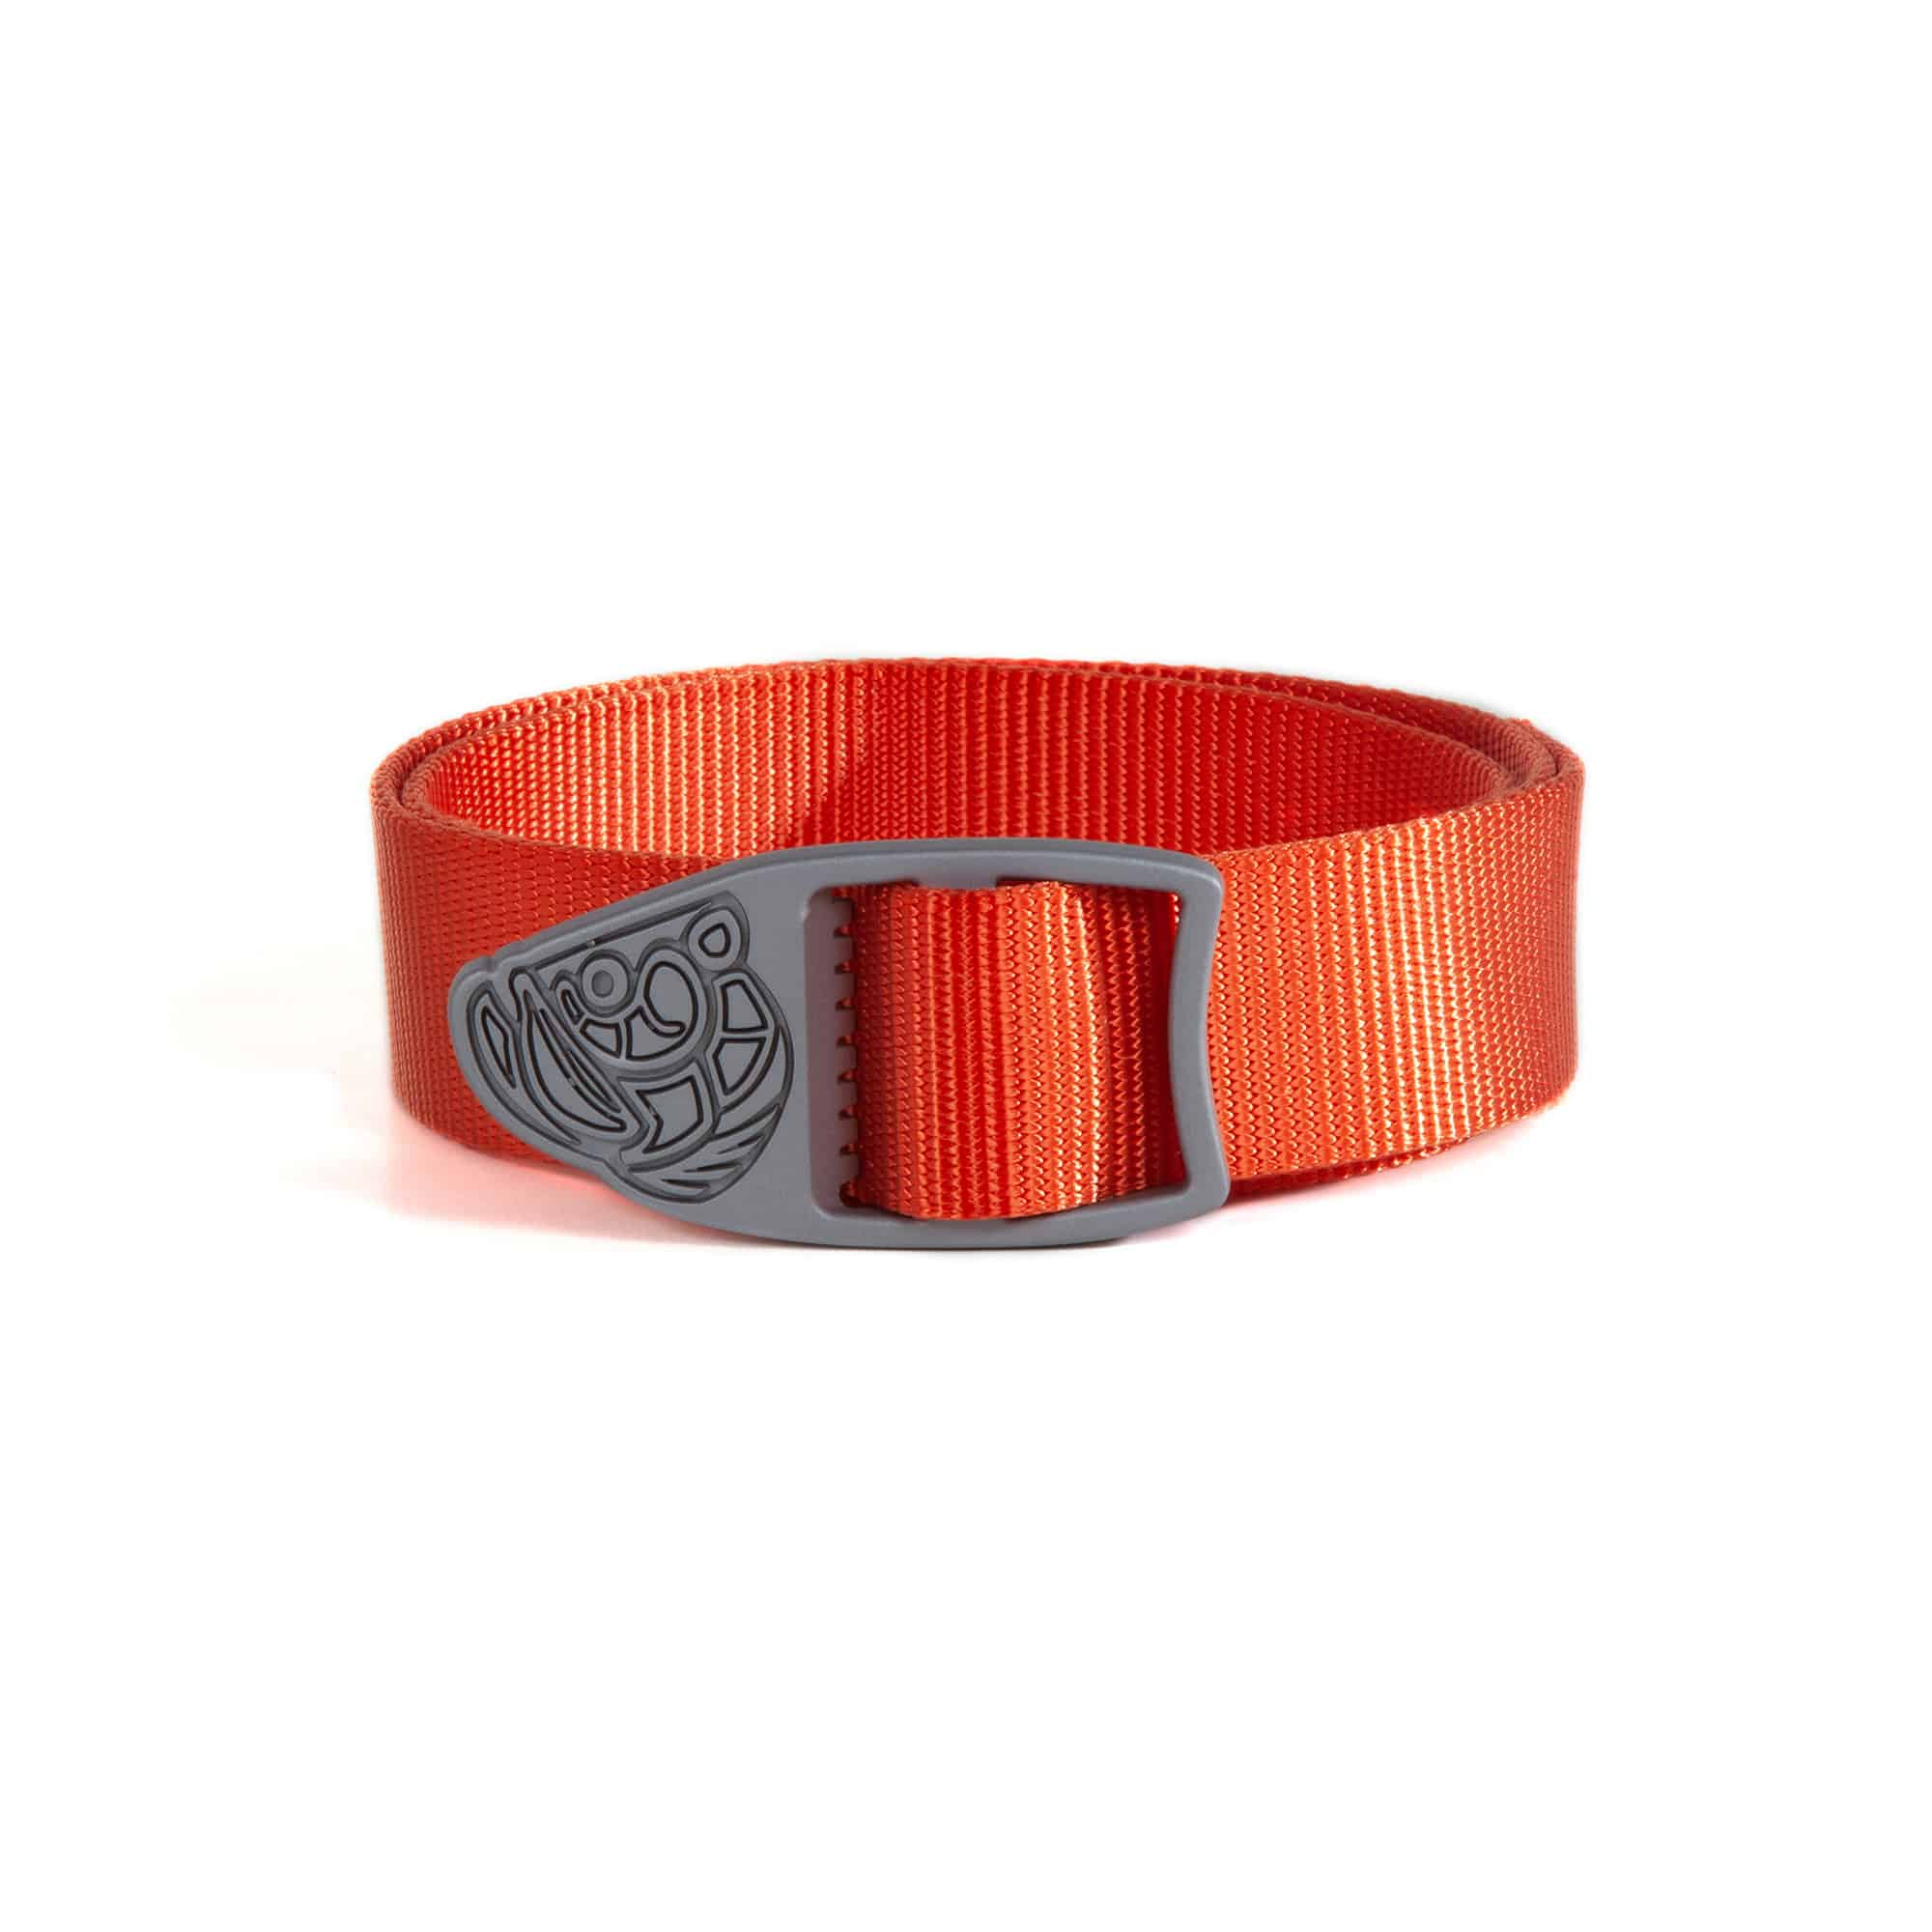 Fishpond King Webbing Belt Fly Fishing Travel Belt Coral Studio Shot